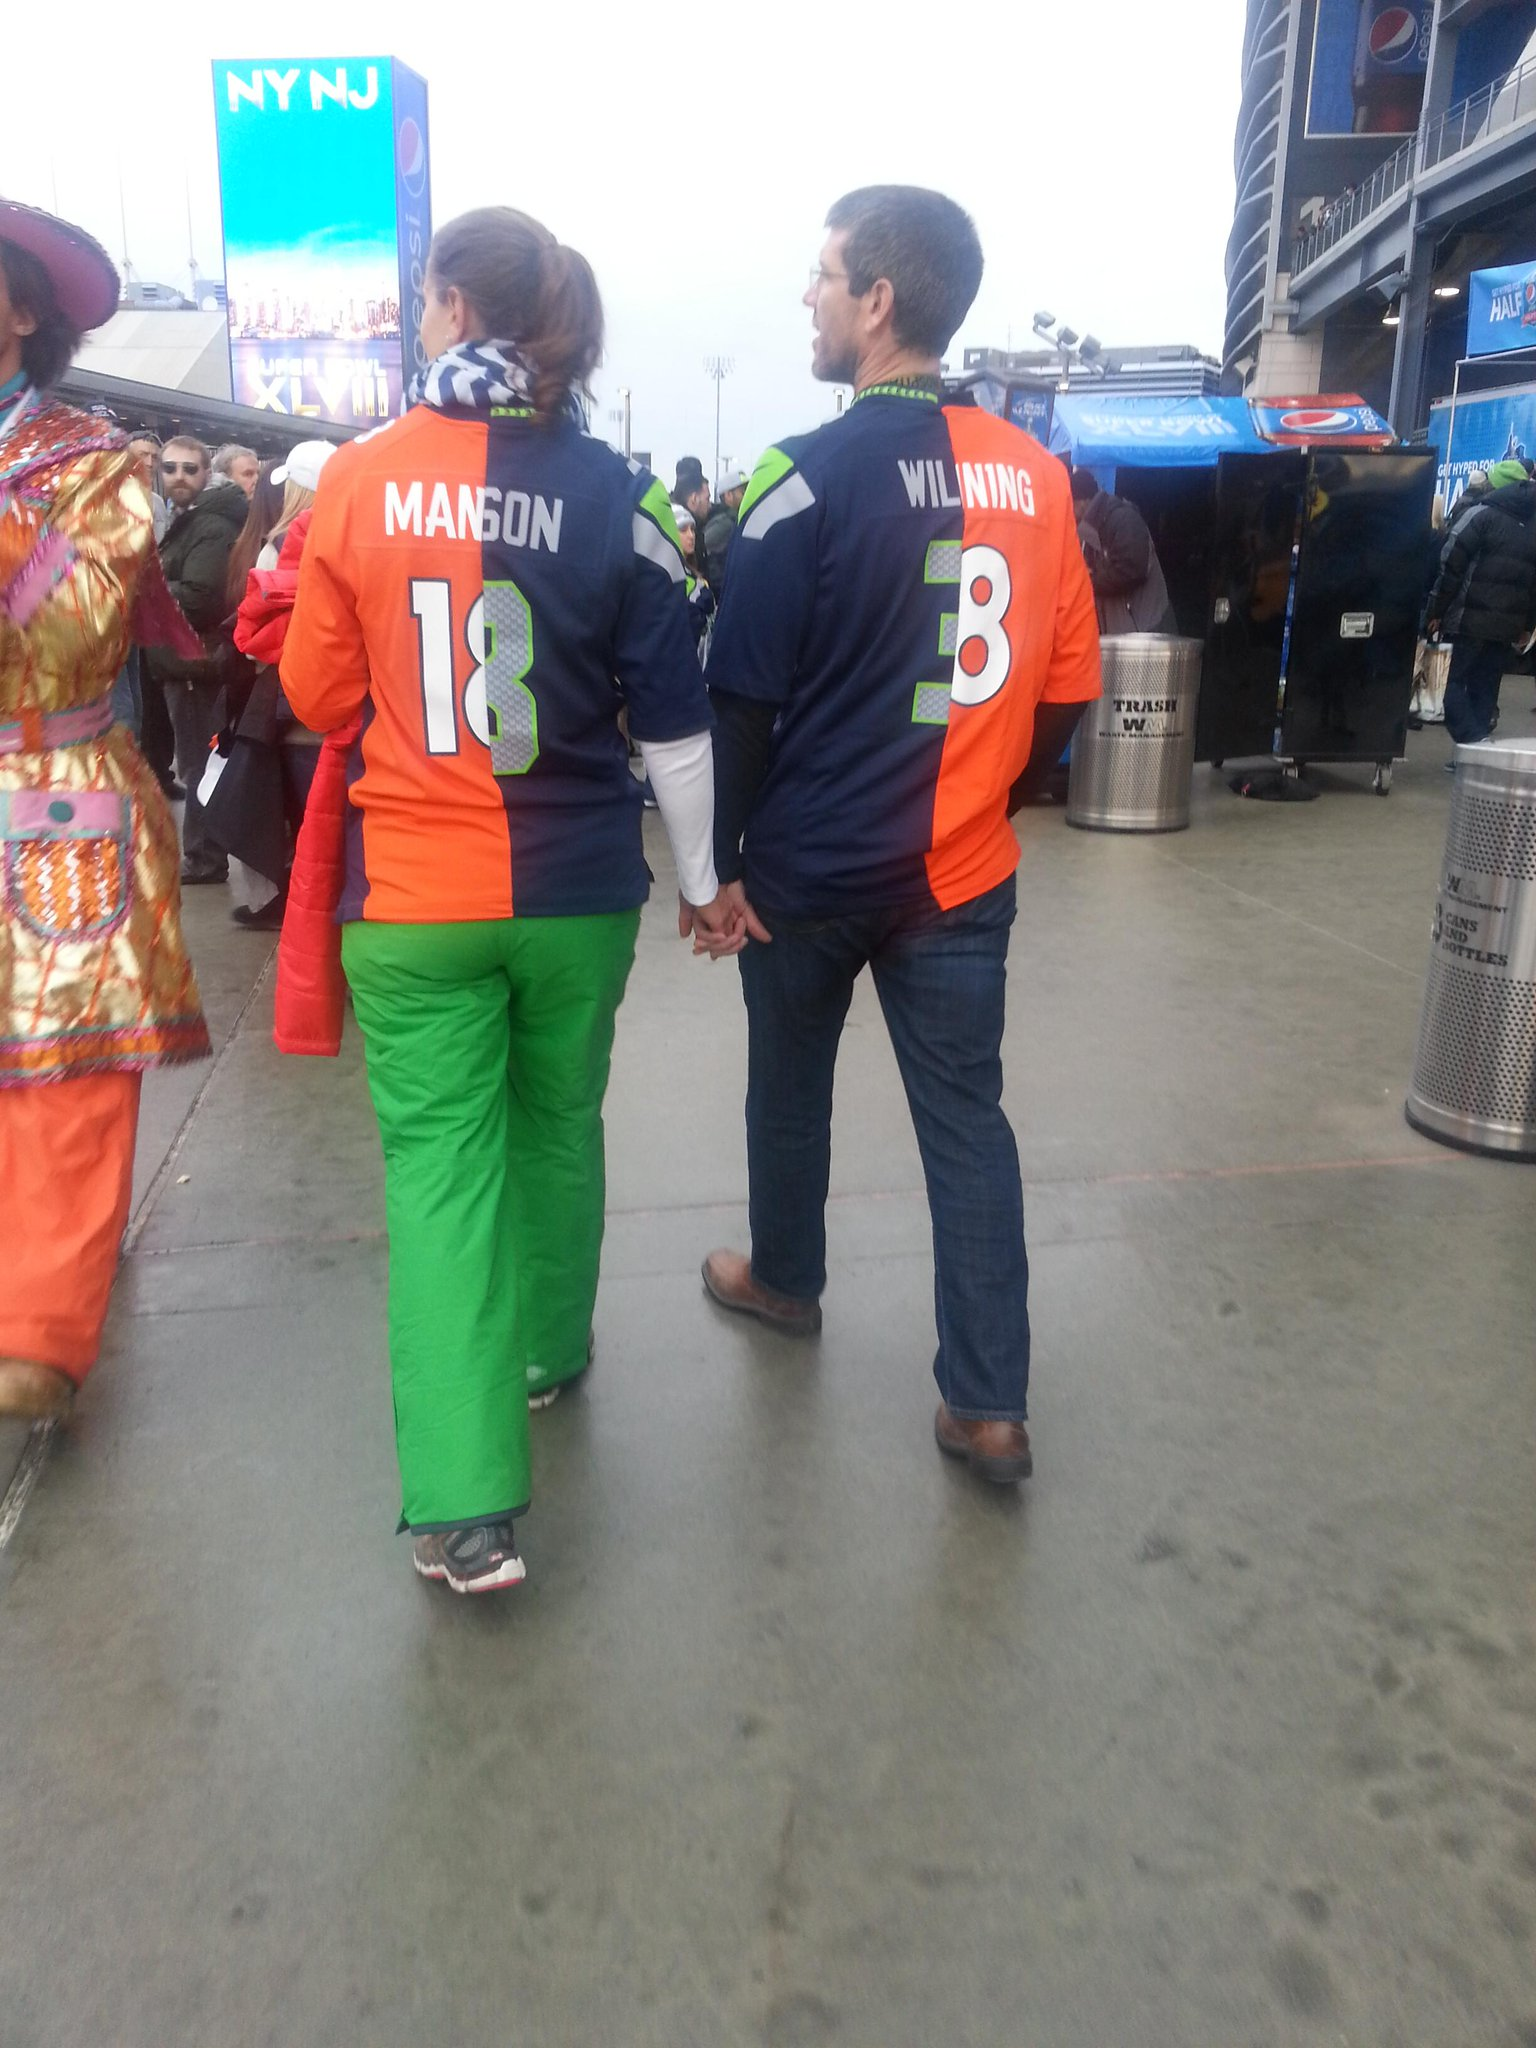 Is that a Charles Manson jersey? RT @SNFonNBC: This couple is rooting for Russell Wilson and Peyton Manning, equally: http://t.co/YujAt4ScIB